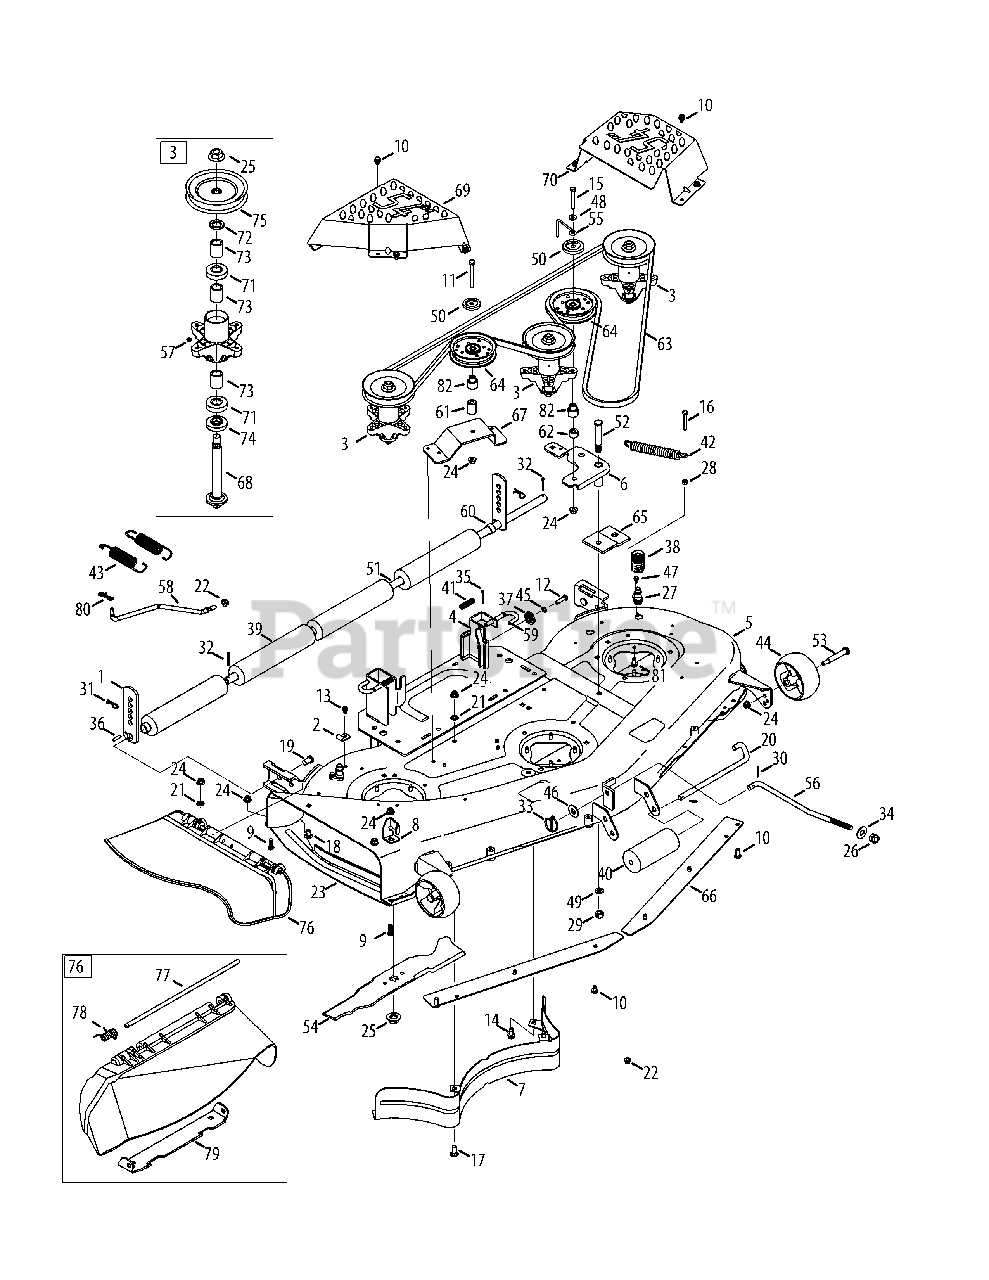 Cub Cadet Parts on the Mower Deck 54-Inch Diagram for GT